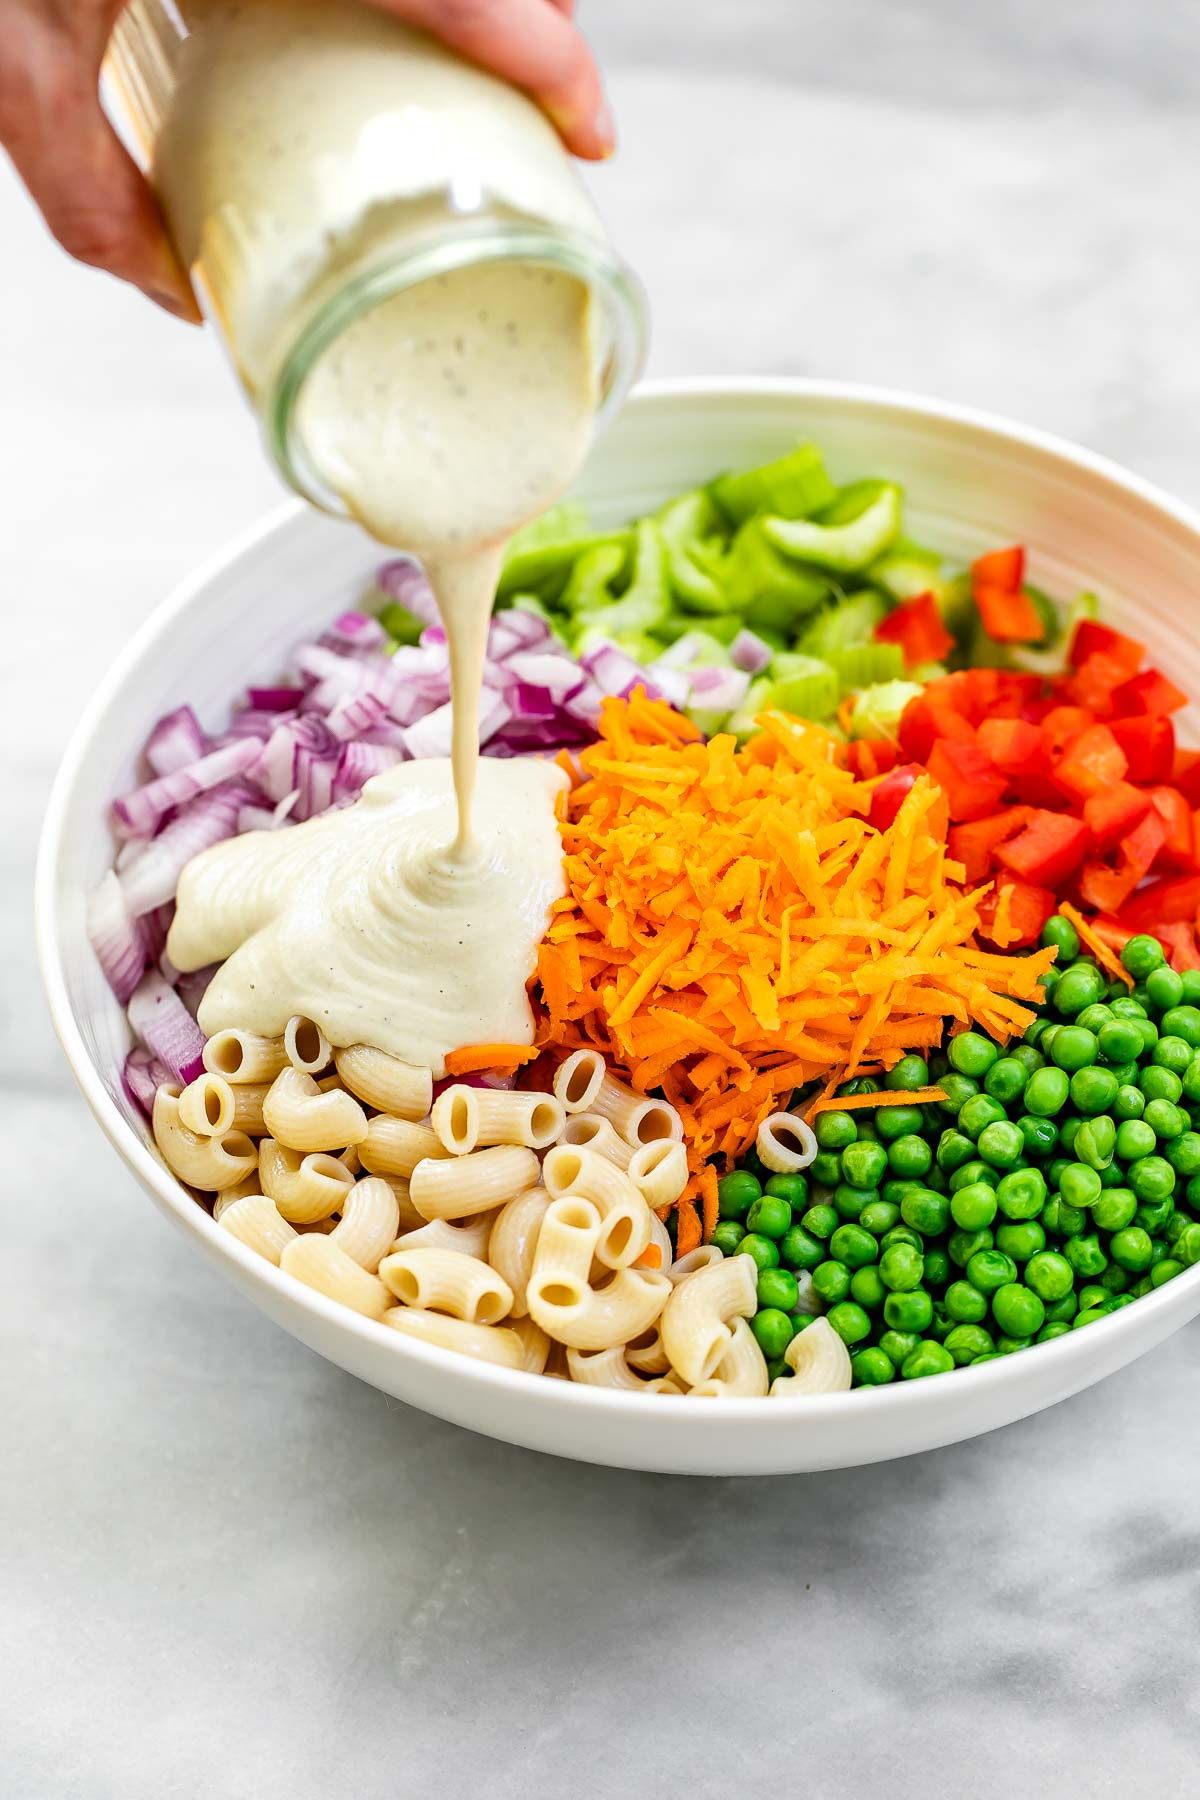 Pouring the dressing on the salad with veggies.